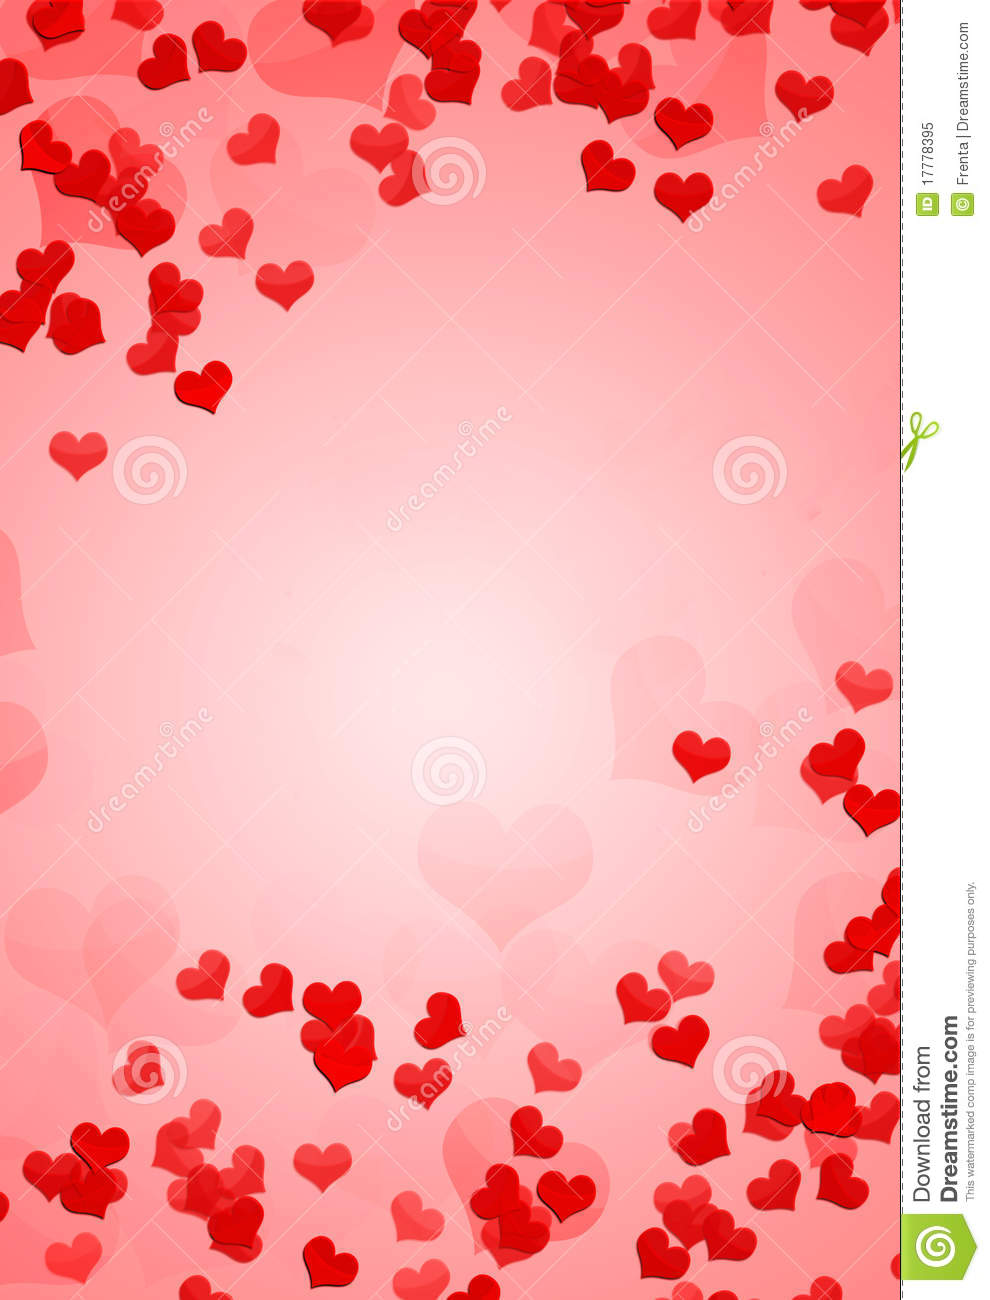 Valentine background stock illustration. Illustration of ...